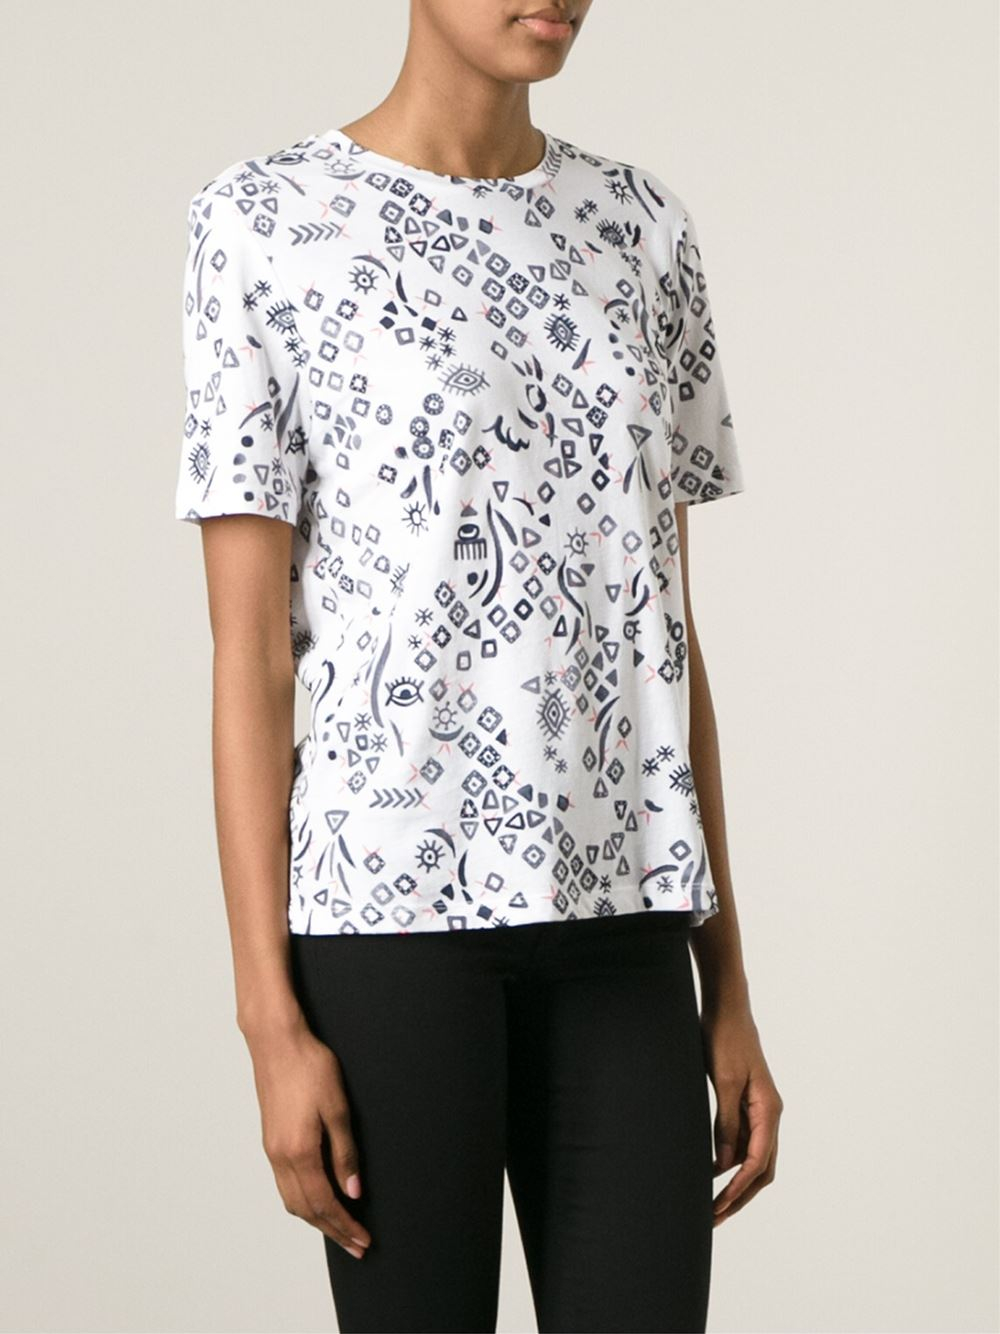 Tory burch abstract print t shirt in white lyst for Tory burch t shirt